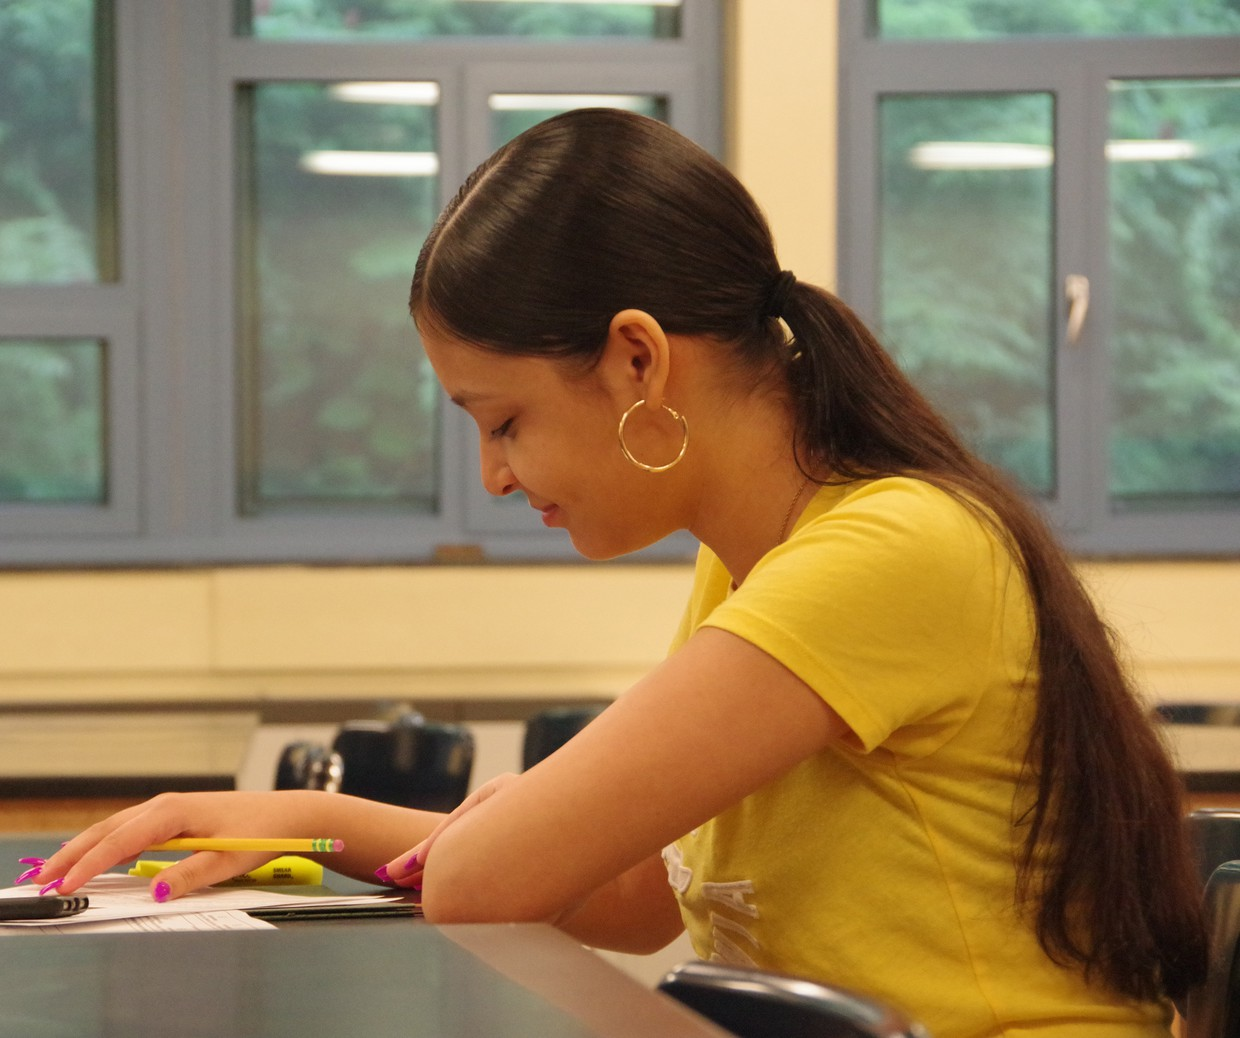 Female high school wearing a yellow shirt while seated at a desk holding a pencil